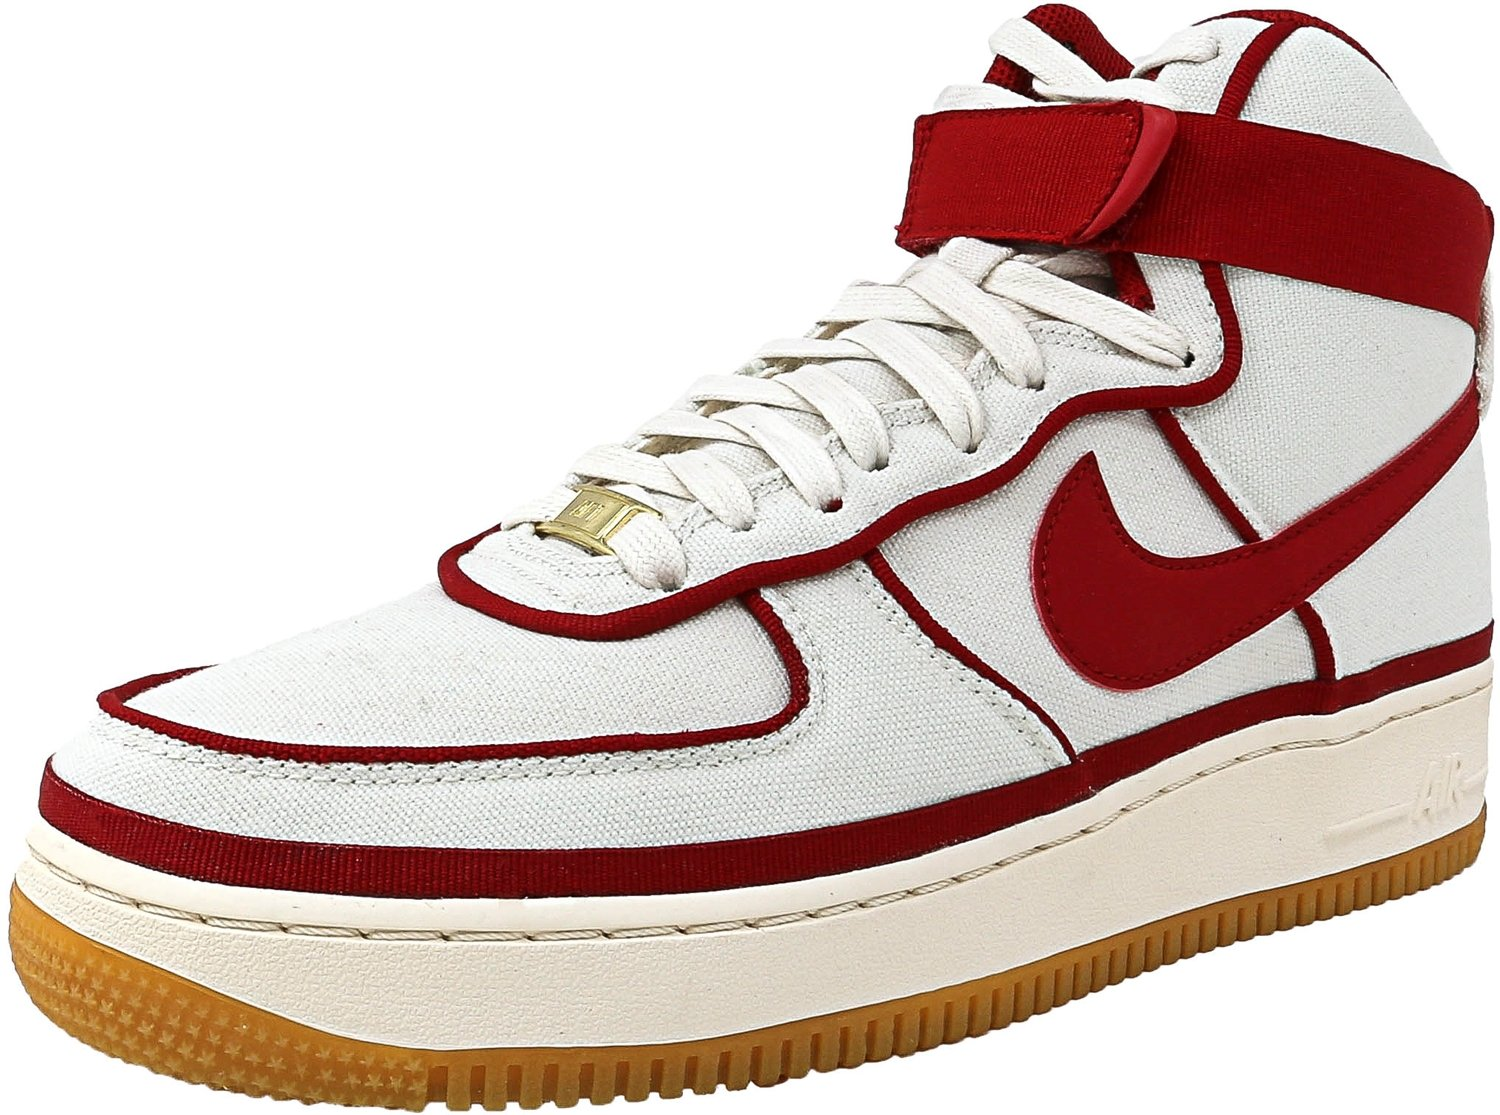 4a3cfb929e321 Galleon - Nike Air Force 1 High '07 LV8 Men's Shoes Sail/Gym Red/Black  806403-101 (9.5 D(M) US)